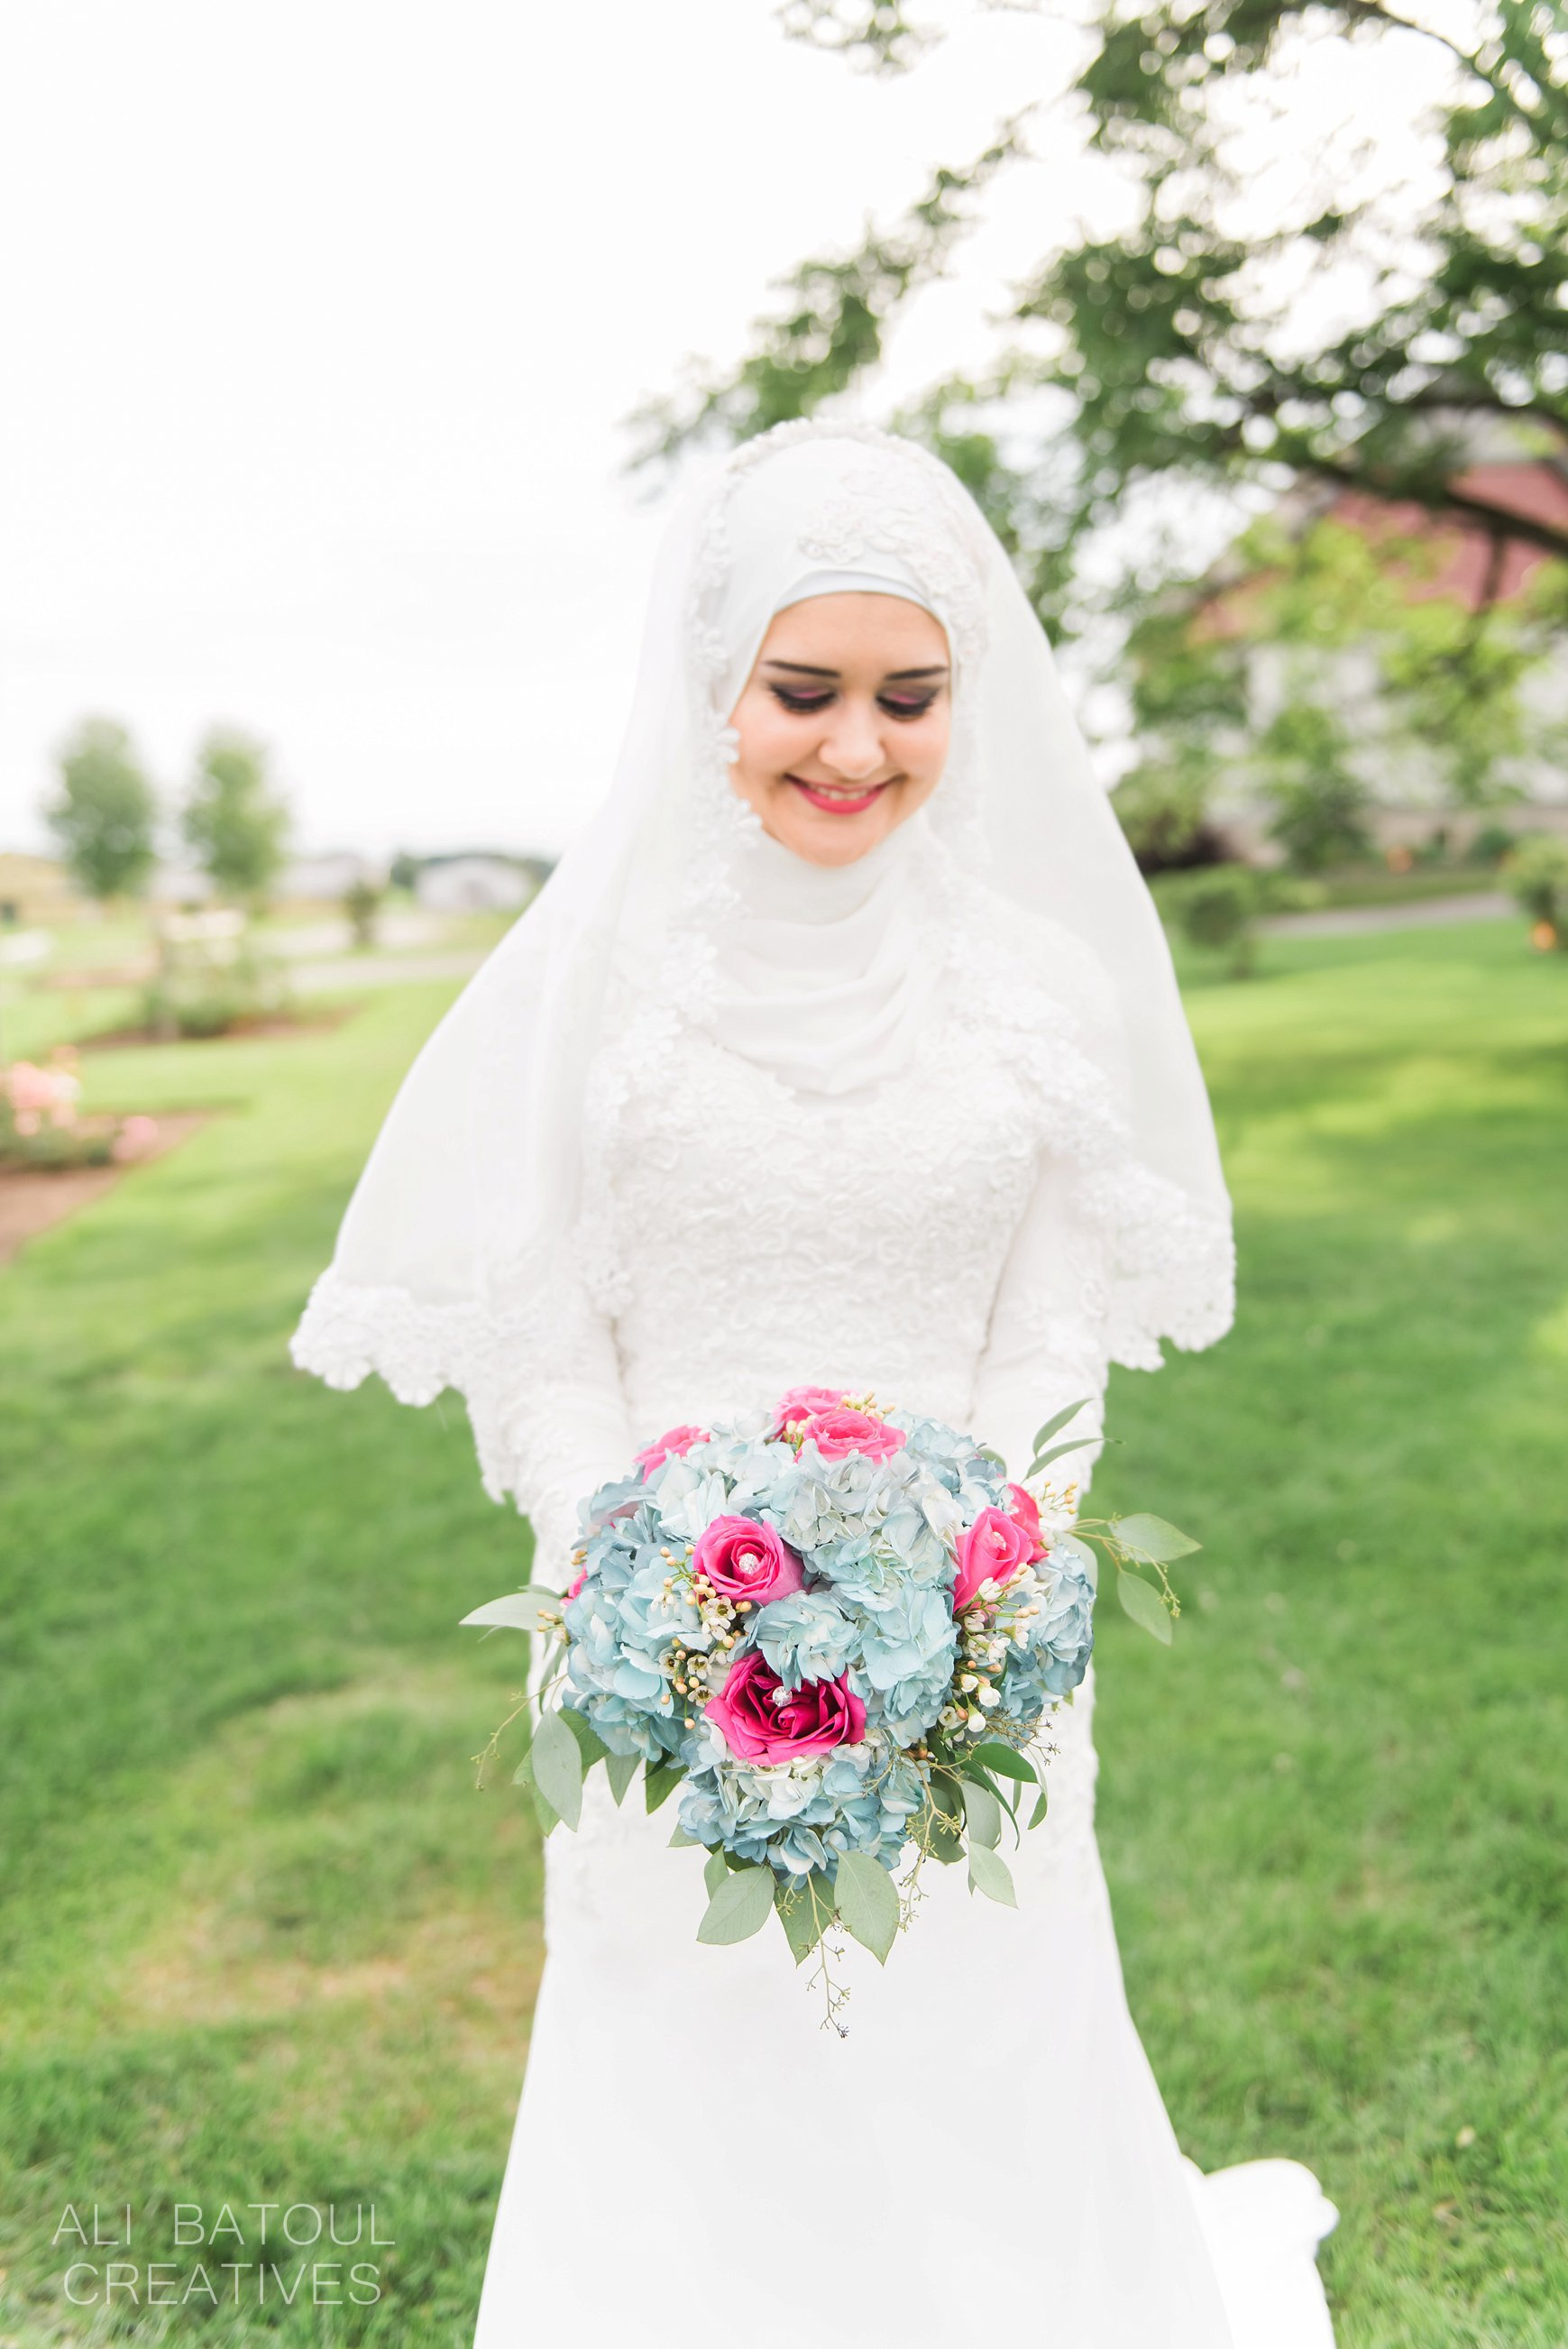 Hanan + Said - Ali Batoul Creatives Fine Art Wedding Photography_0279.jpg